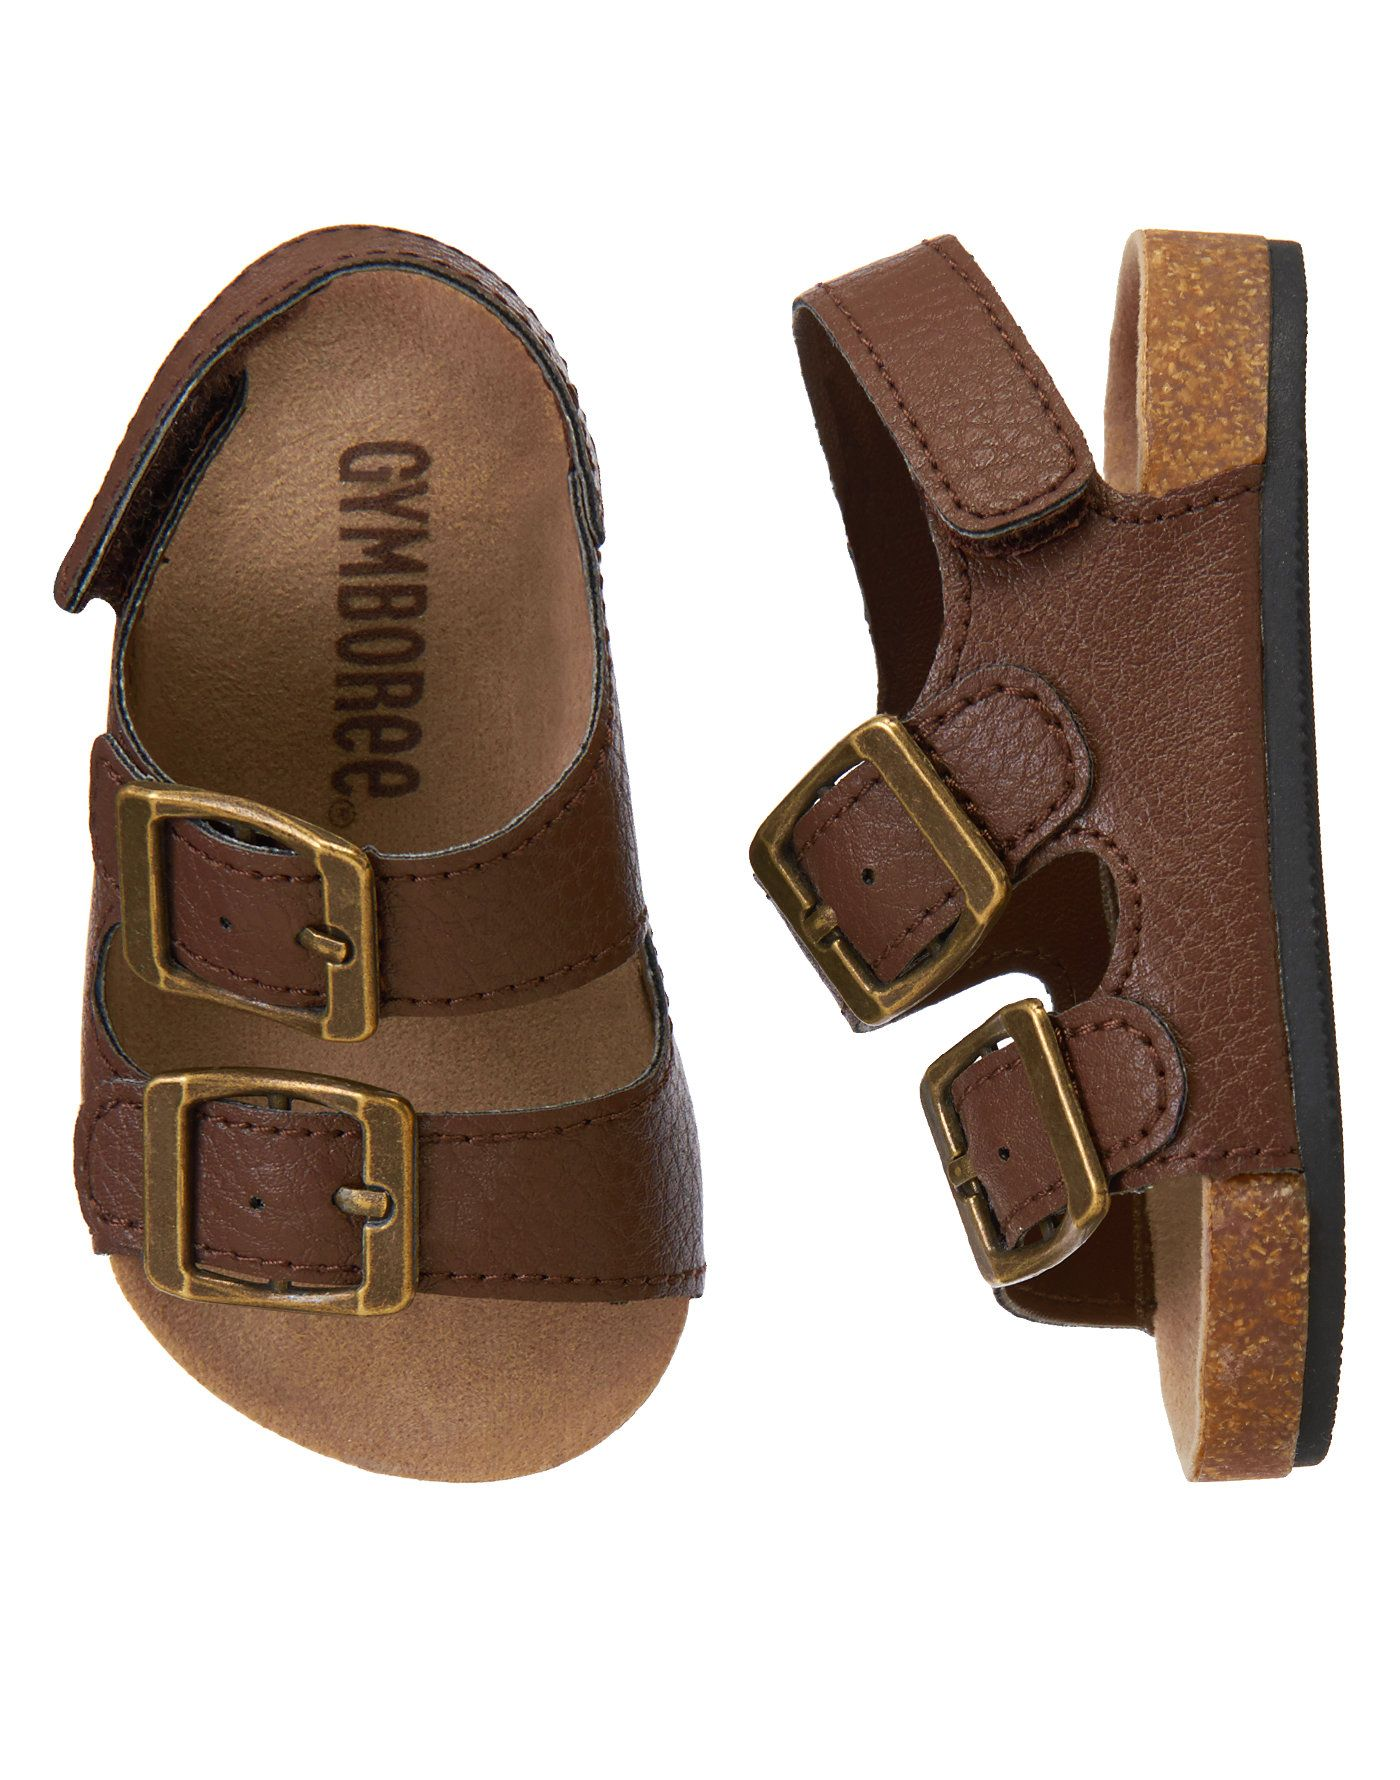 f5c86d4e91 Crib Sandals at Gymboree Collection Name: Rainforest Crawl (2015 ...